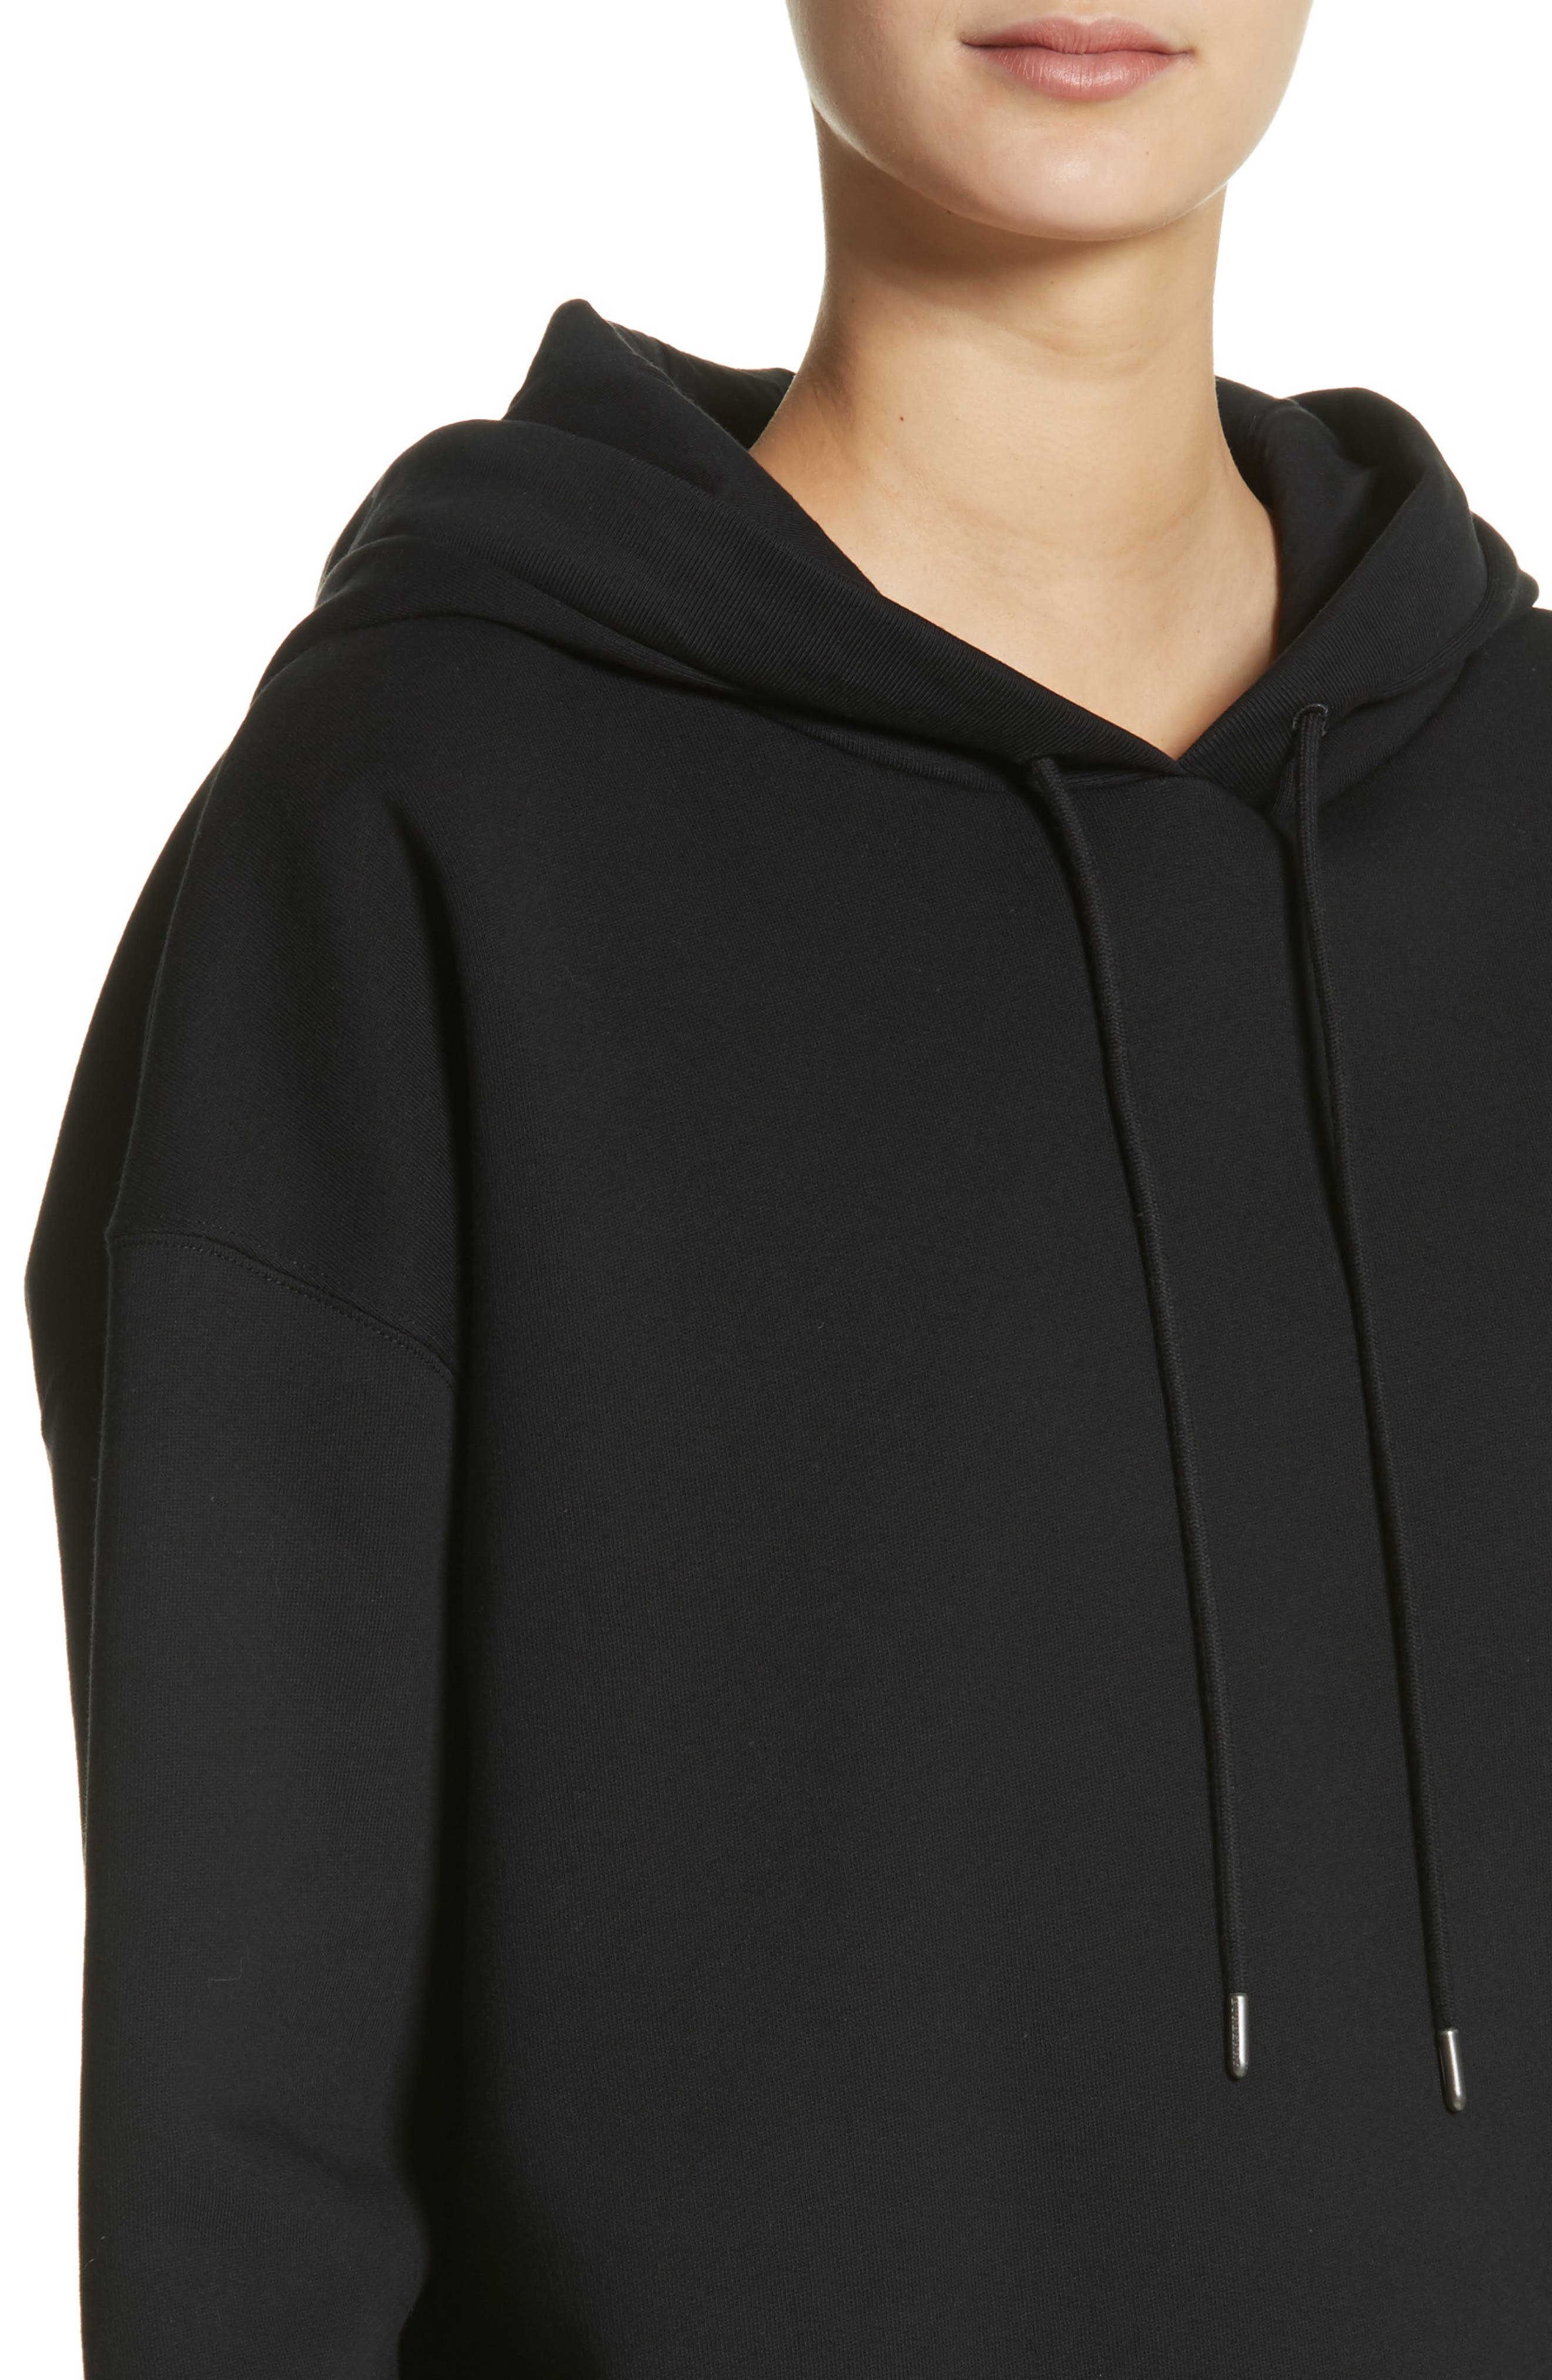 Escara Embroidered Hoodie,                             Alternate thumbnail 4, color,                             001